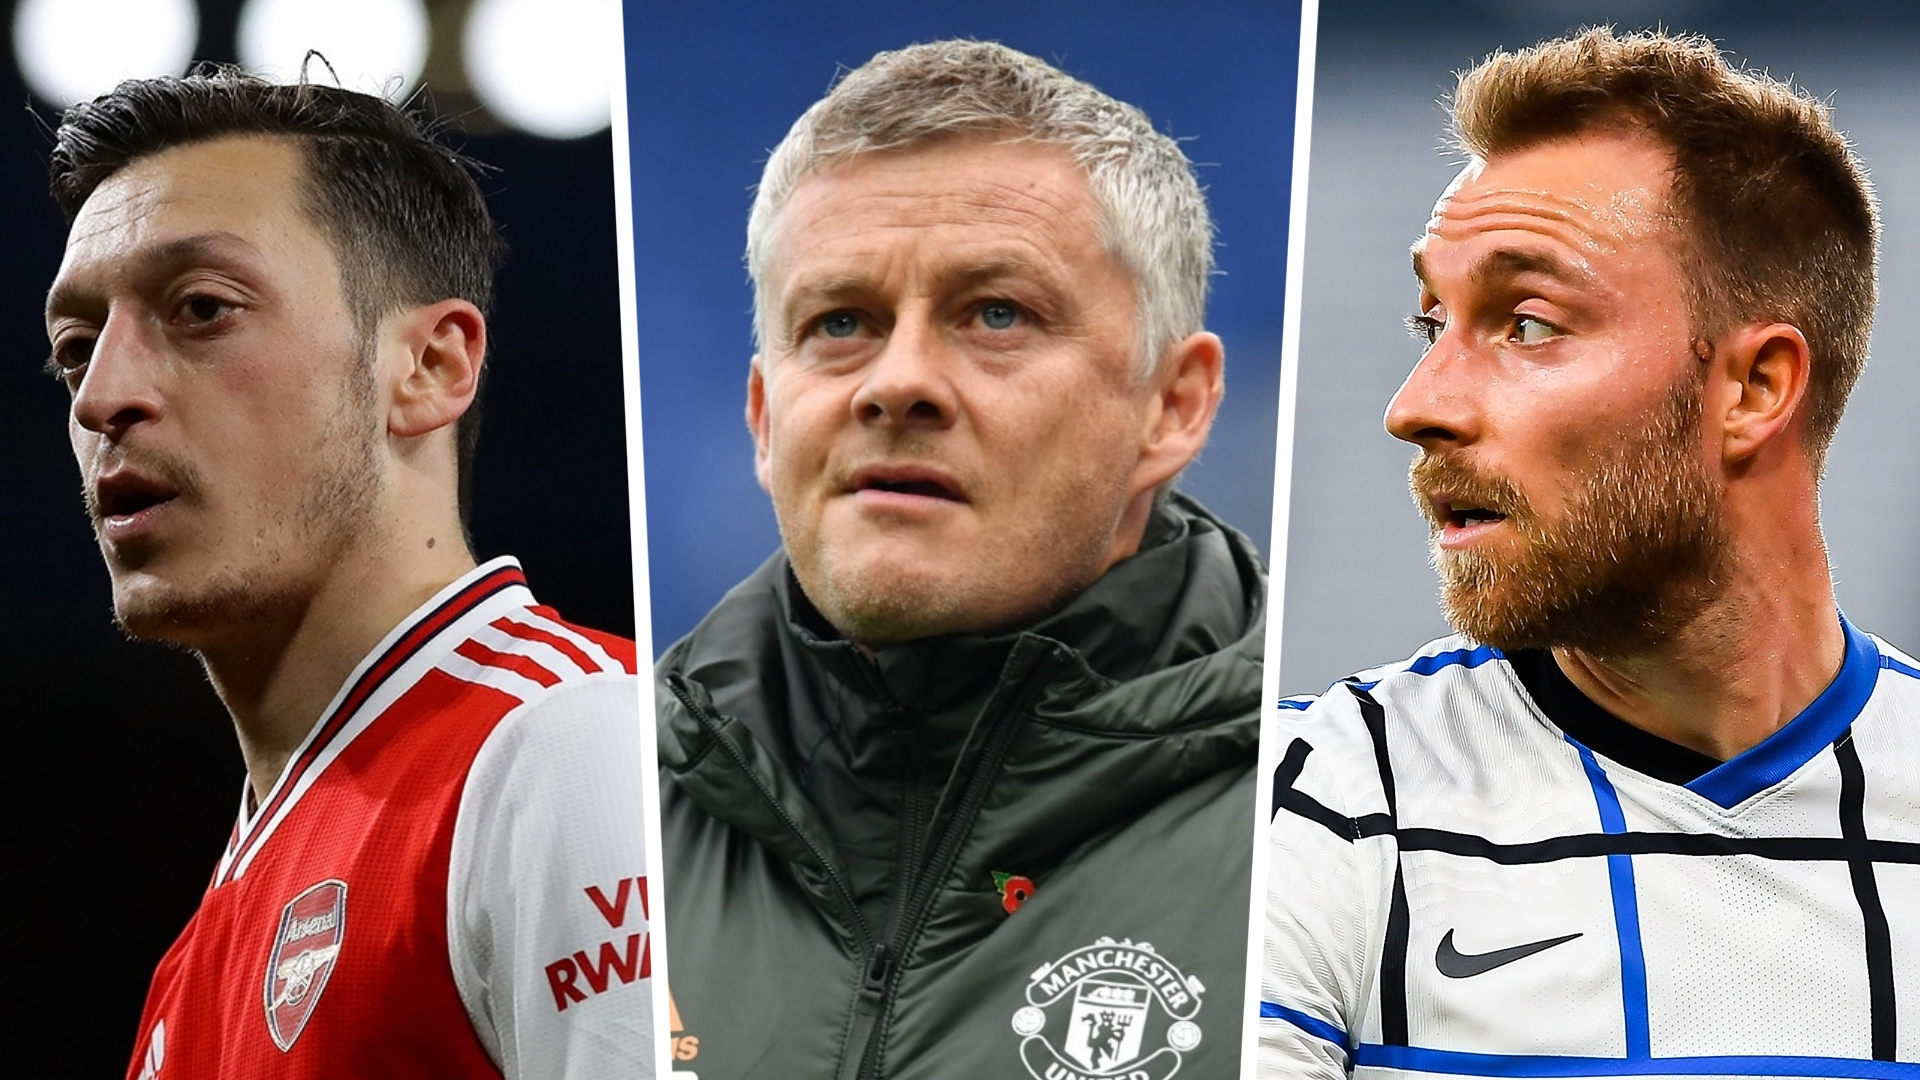 When does the 2021 January transfer window open & who are the top targets?